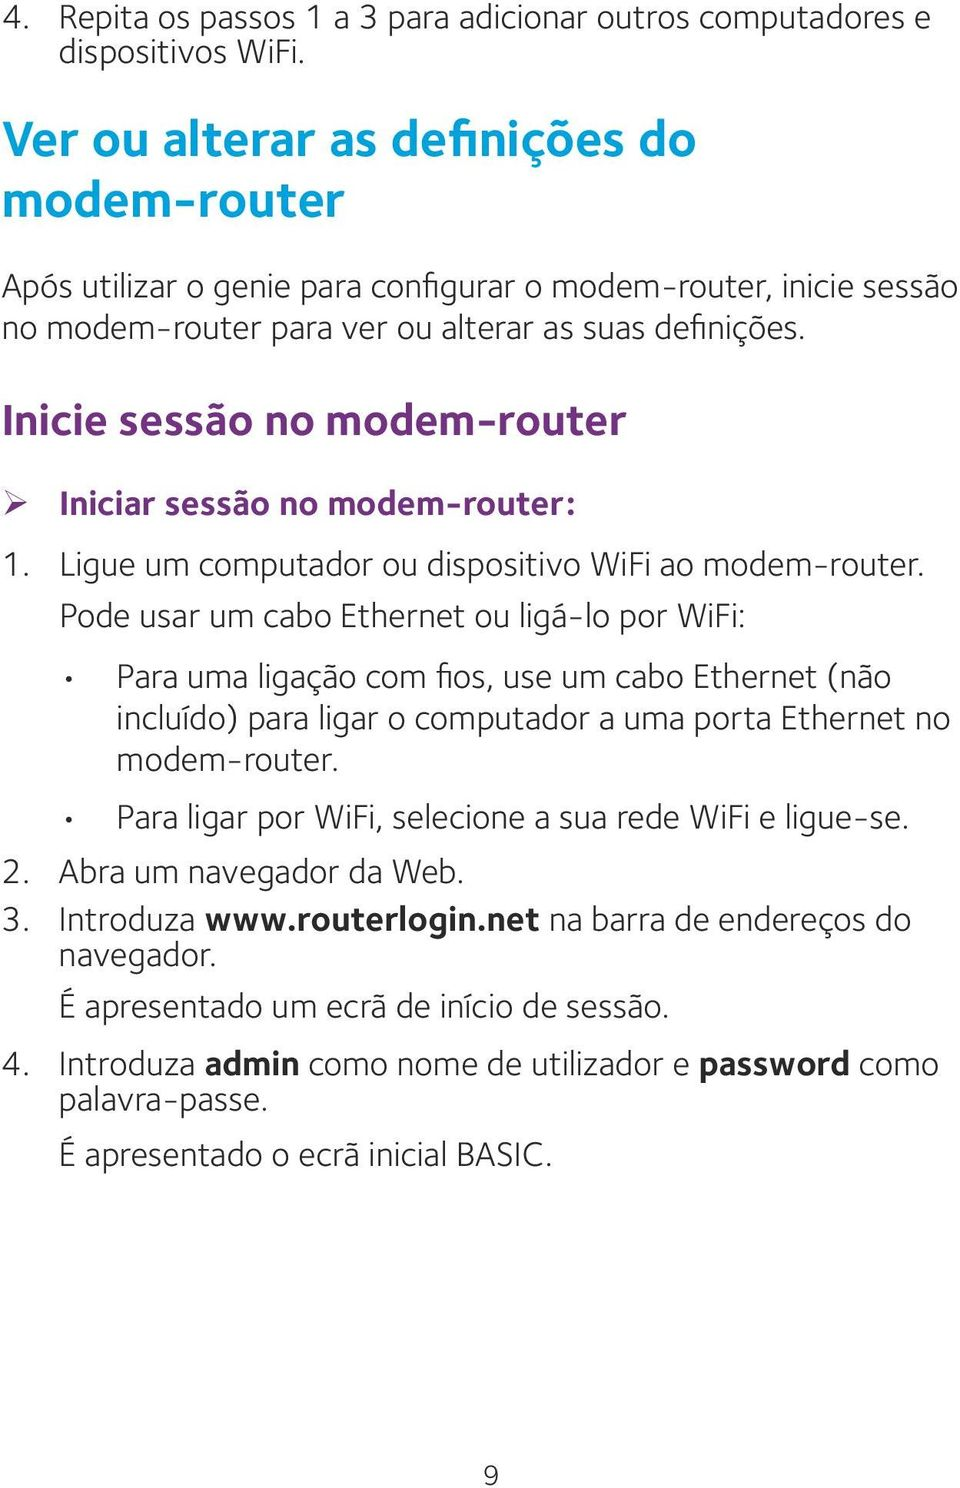 Inicie sessão no modem-router ¾ Iniciar sessão no modem-router: 1. Ligue um computador ou dispositivo WiFi ao modem-router.